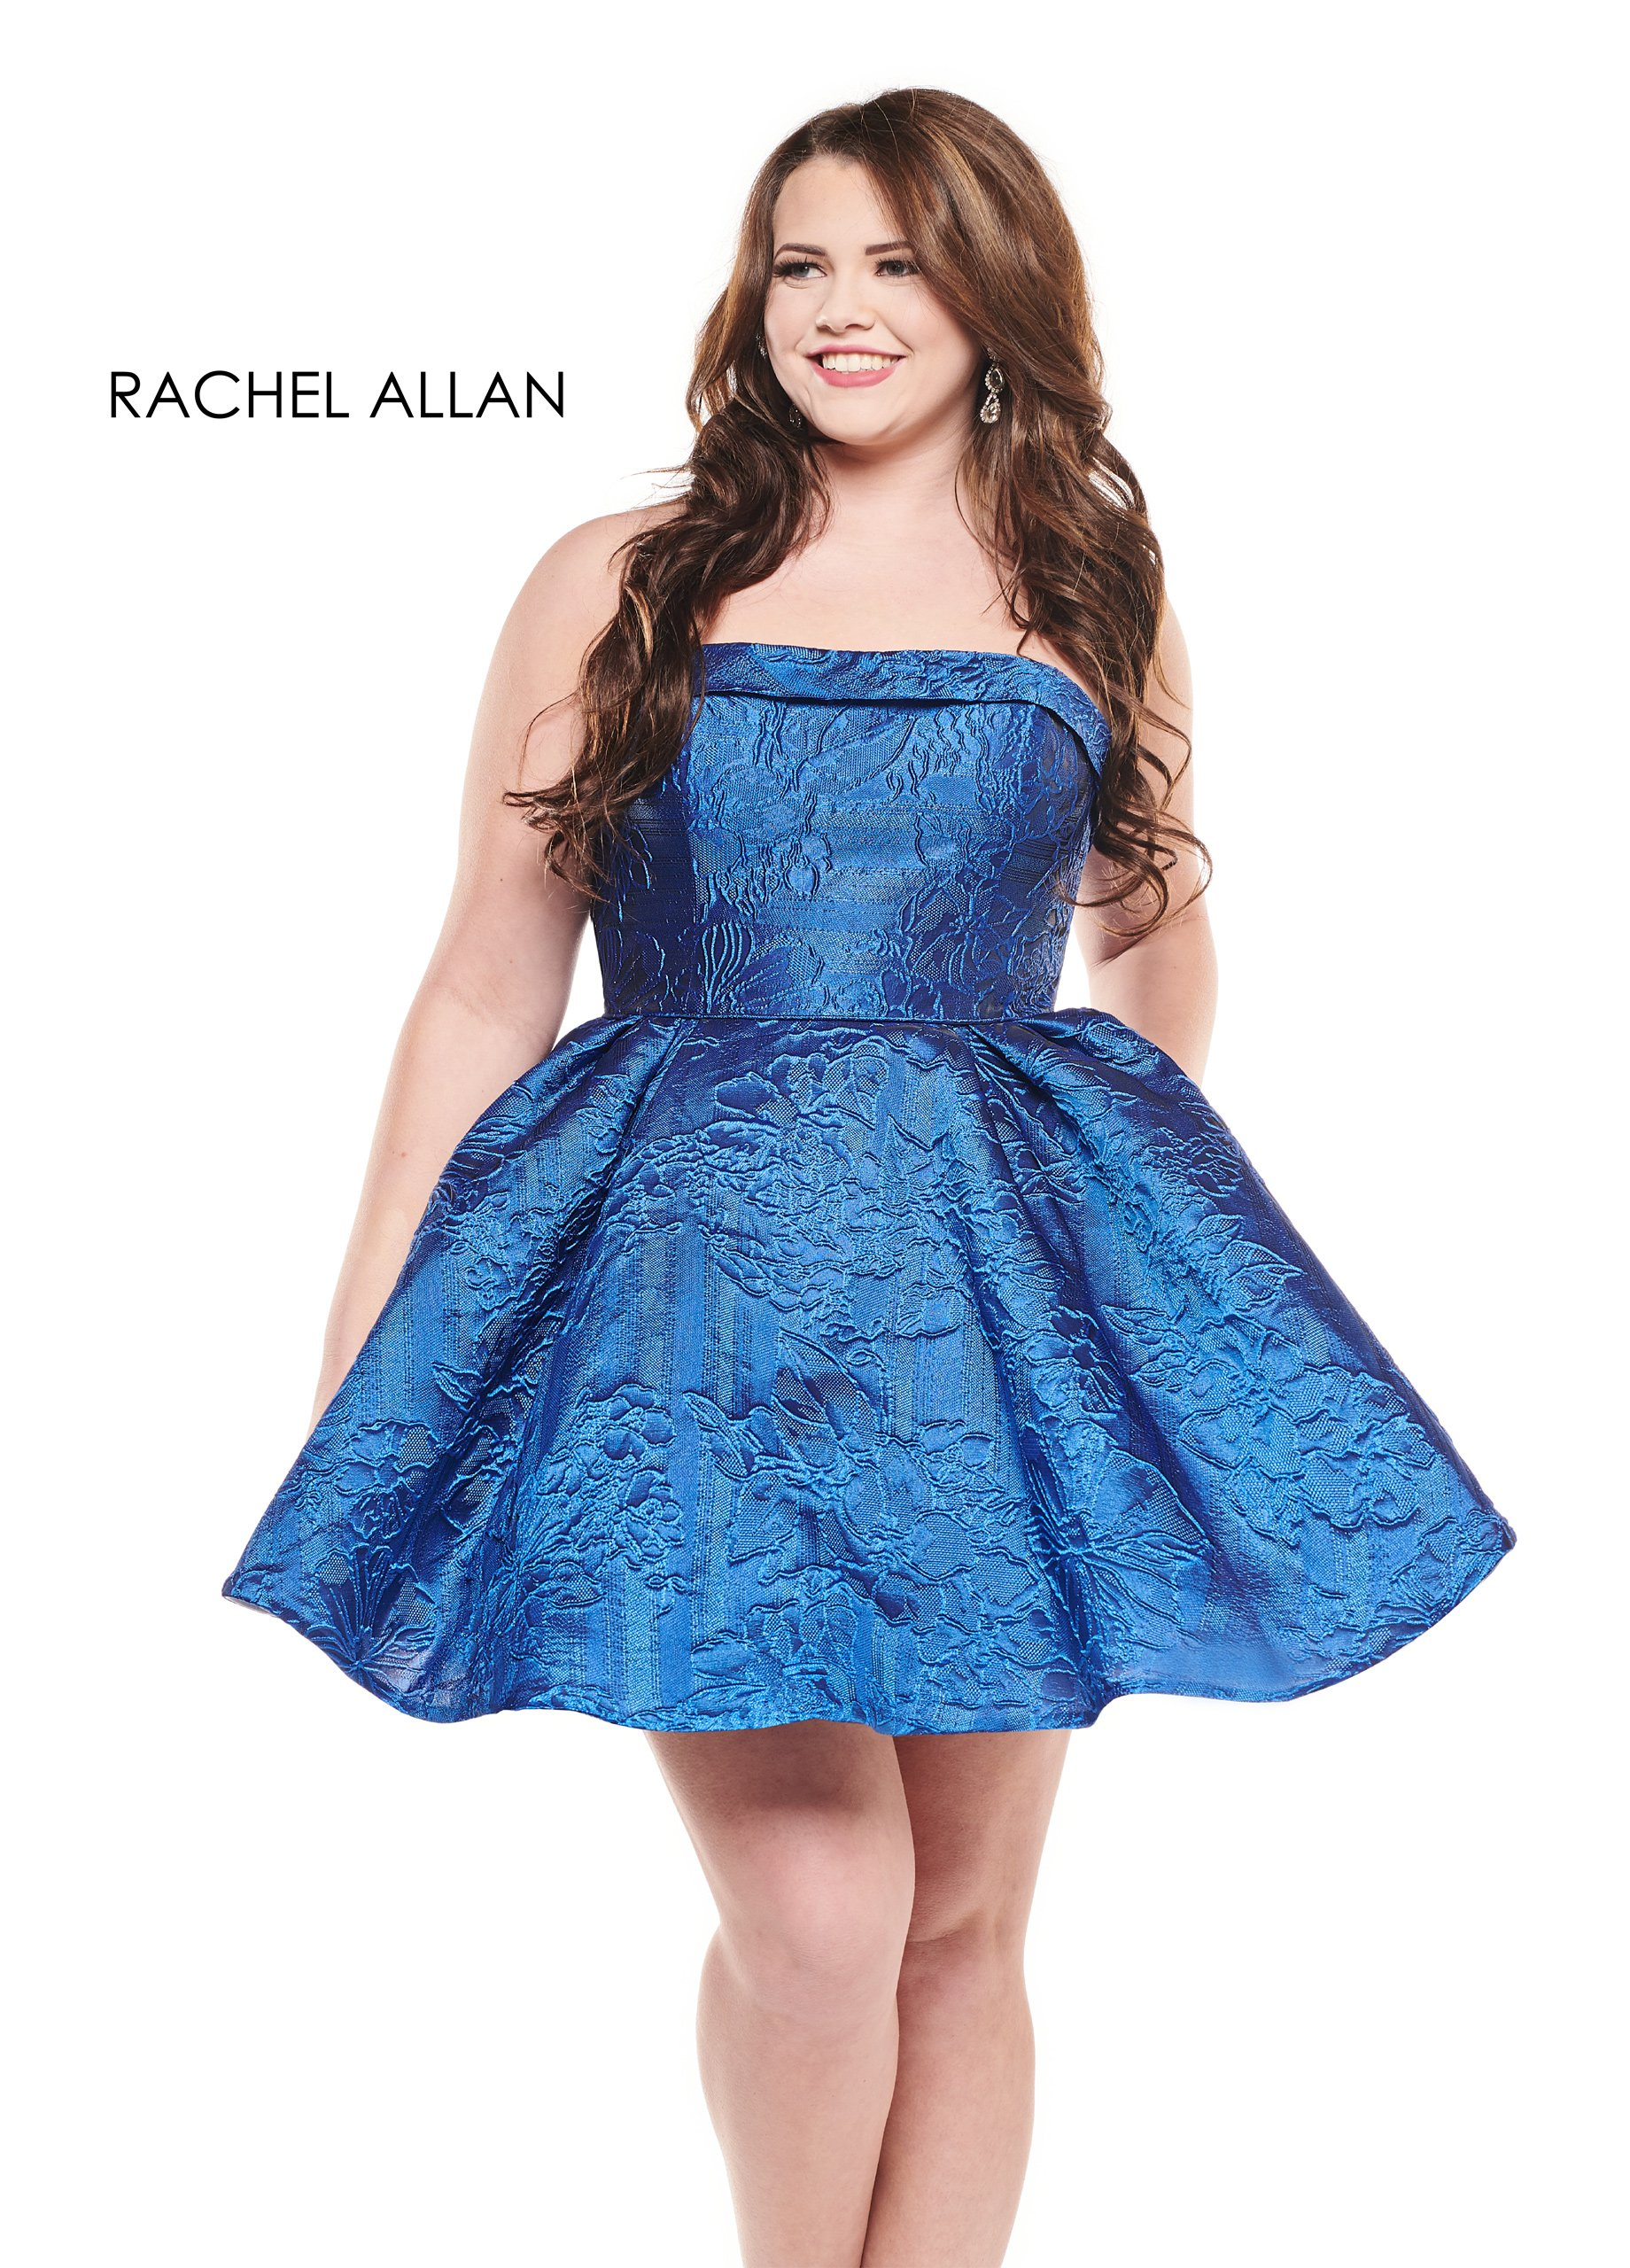 Strapless Full Skirt Mini Homecoming Curves in Royal Color